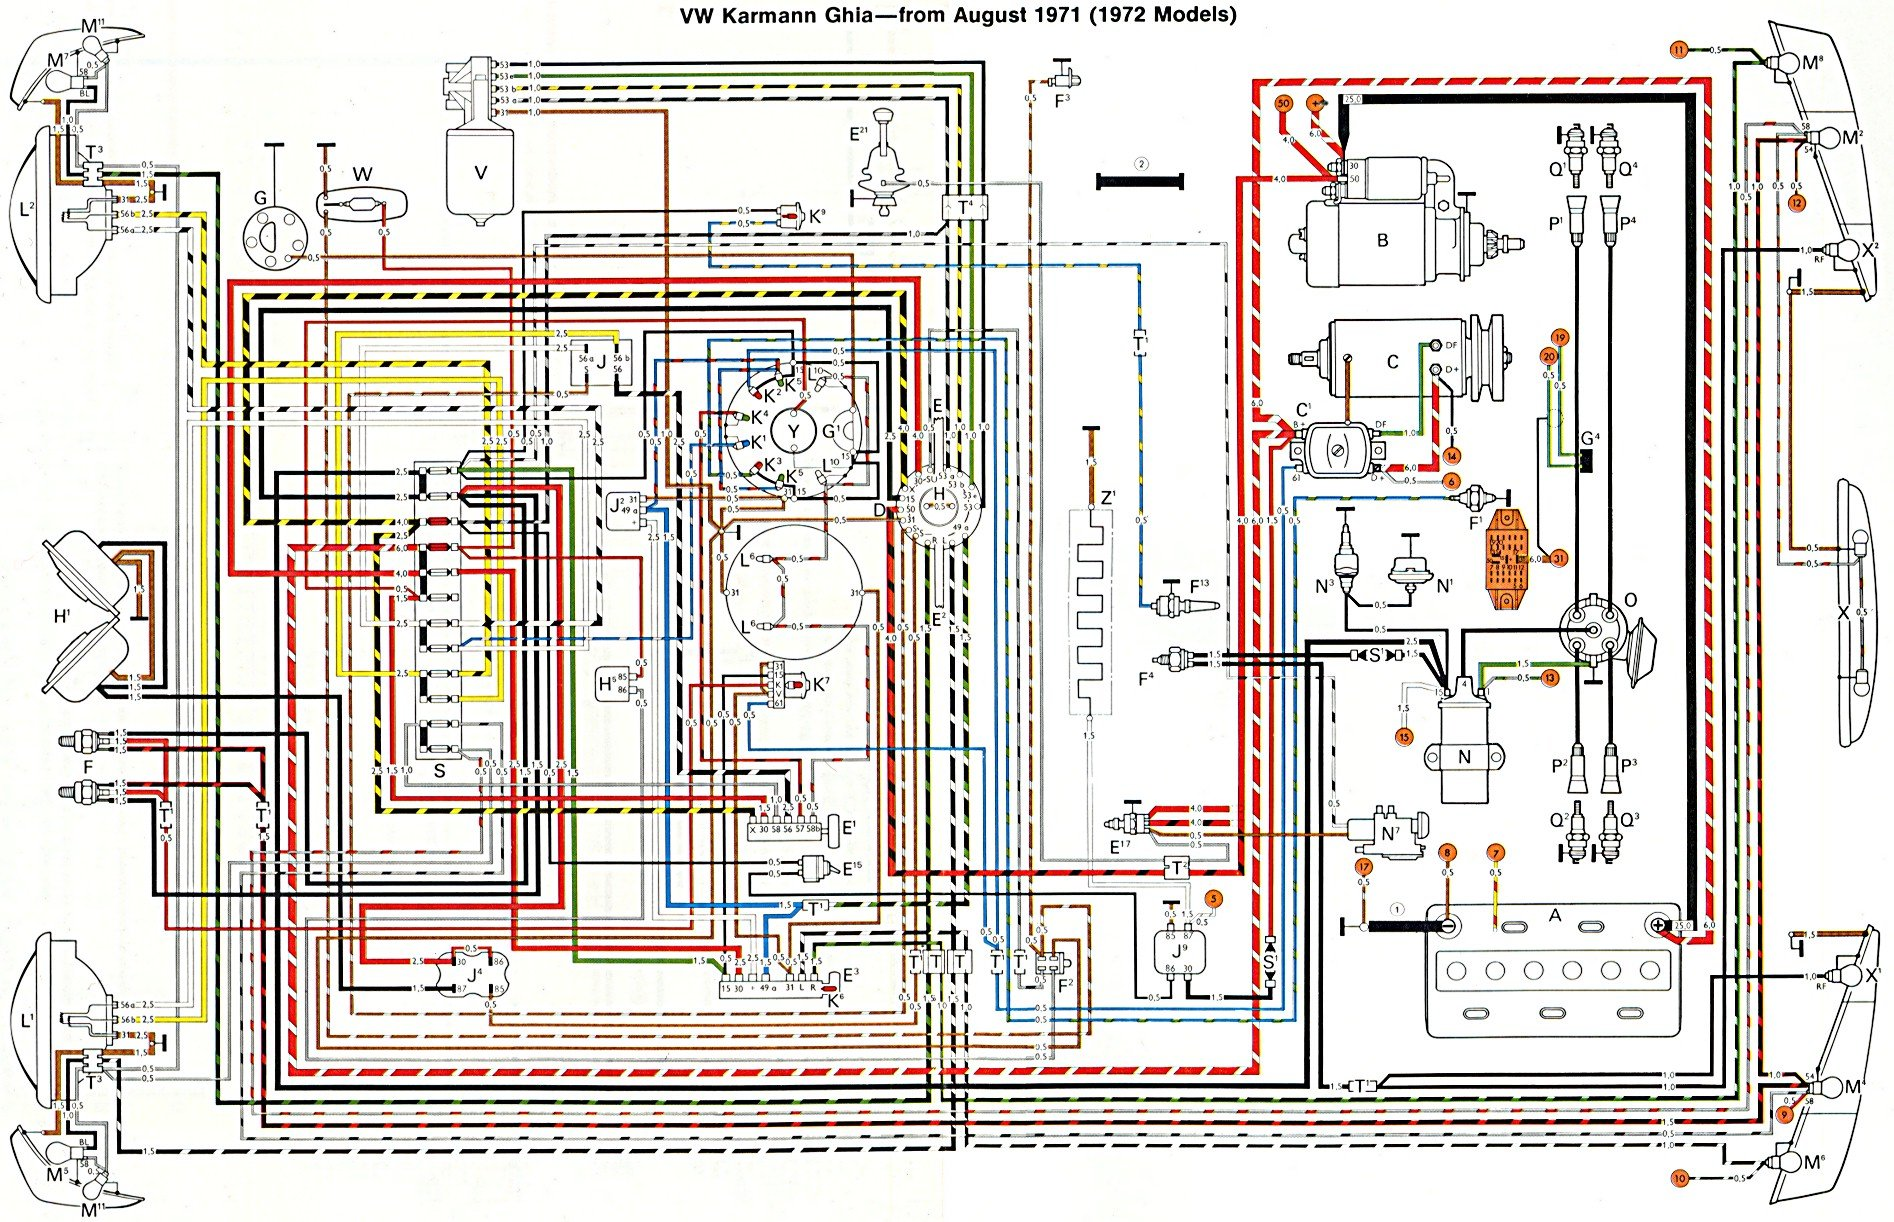 72ghia 74 super beetle wiring diagram 74 vw super beetle wiring diagram Wiring Harness Diagram at fashall.co